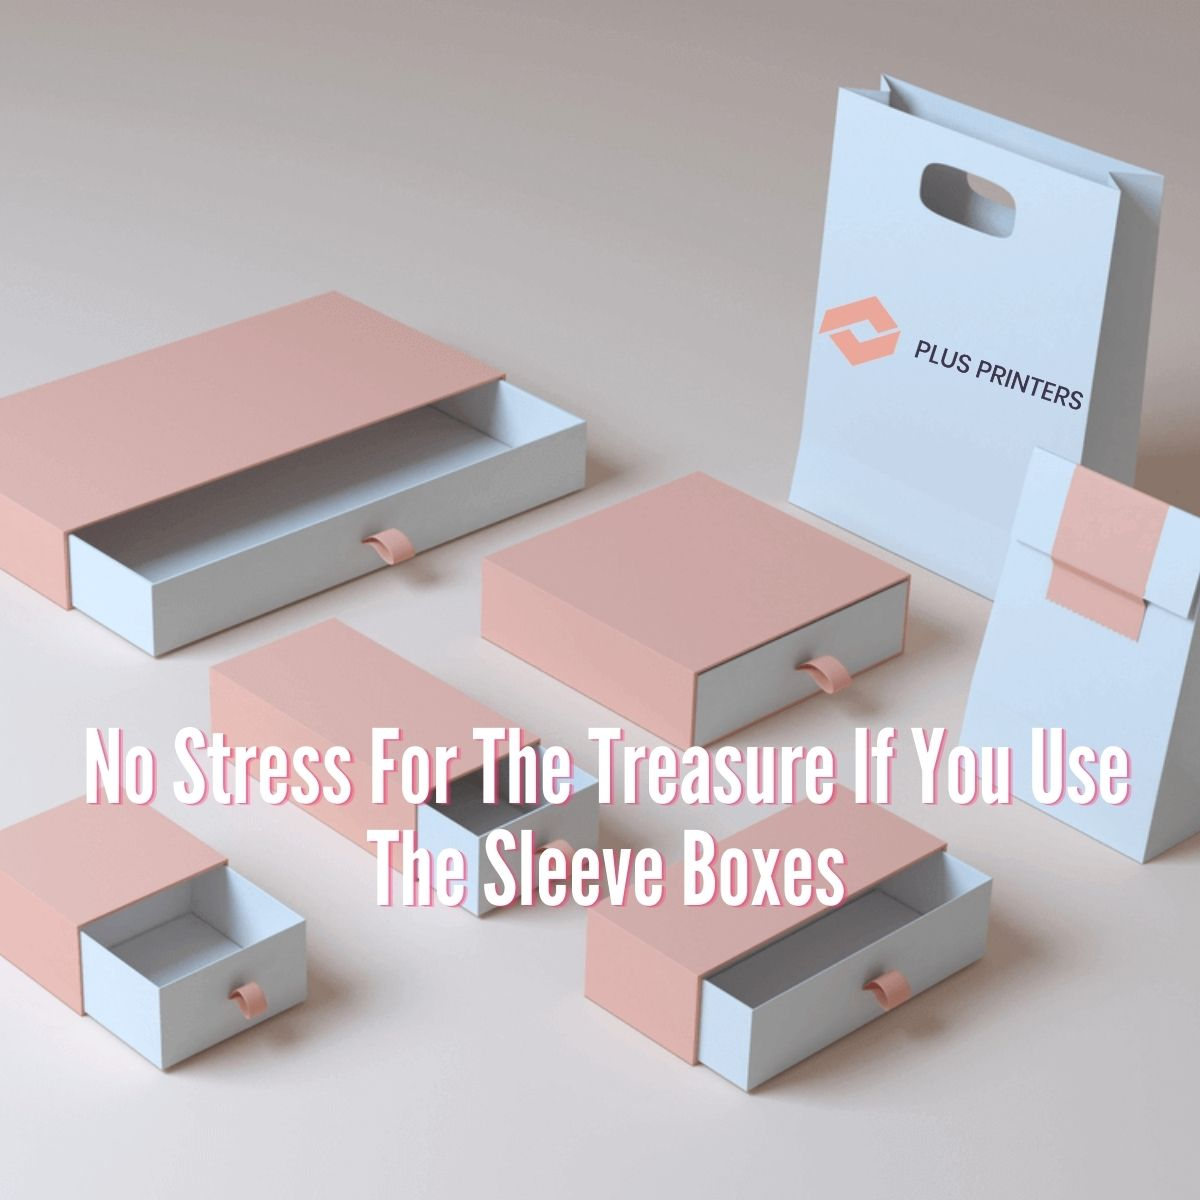 The Sleeve Boxes